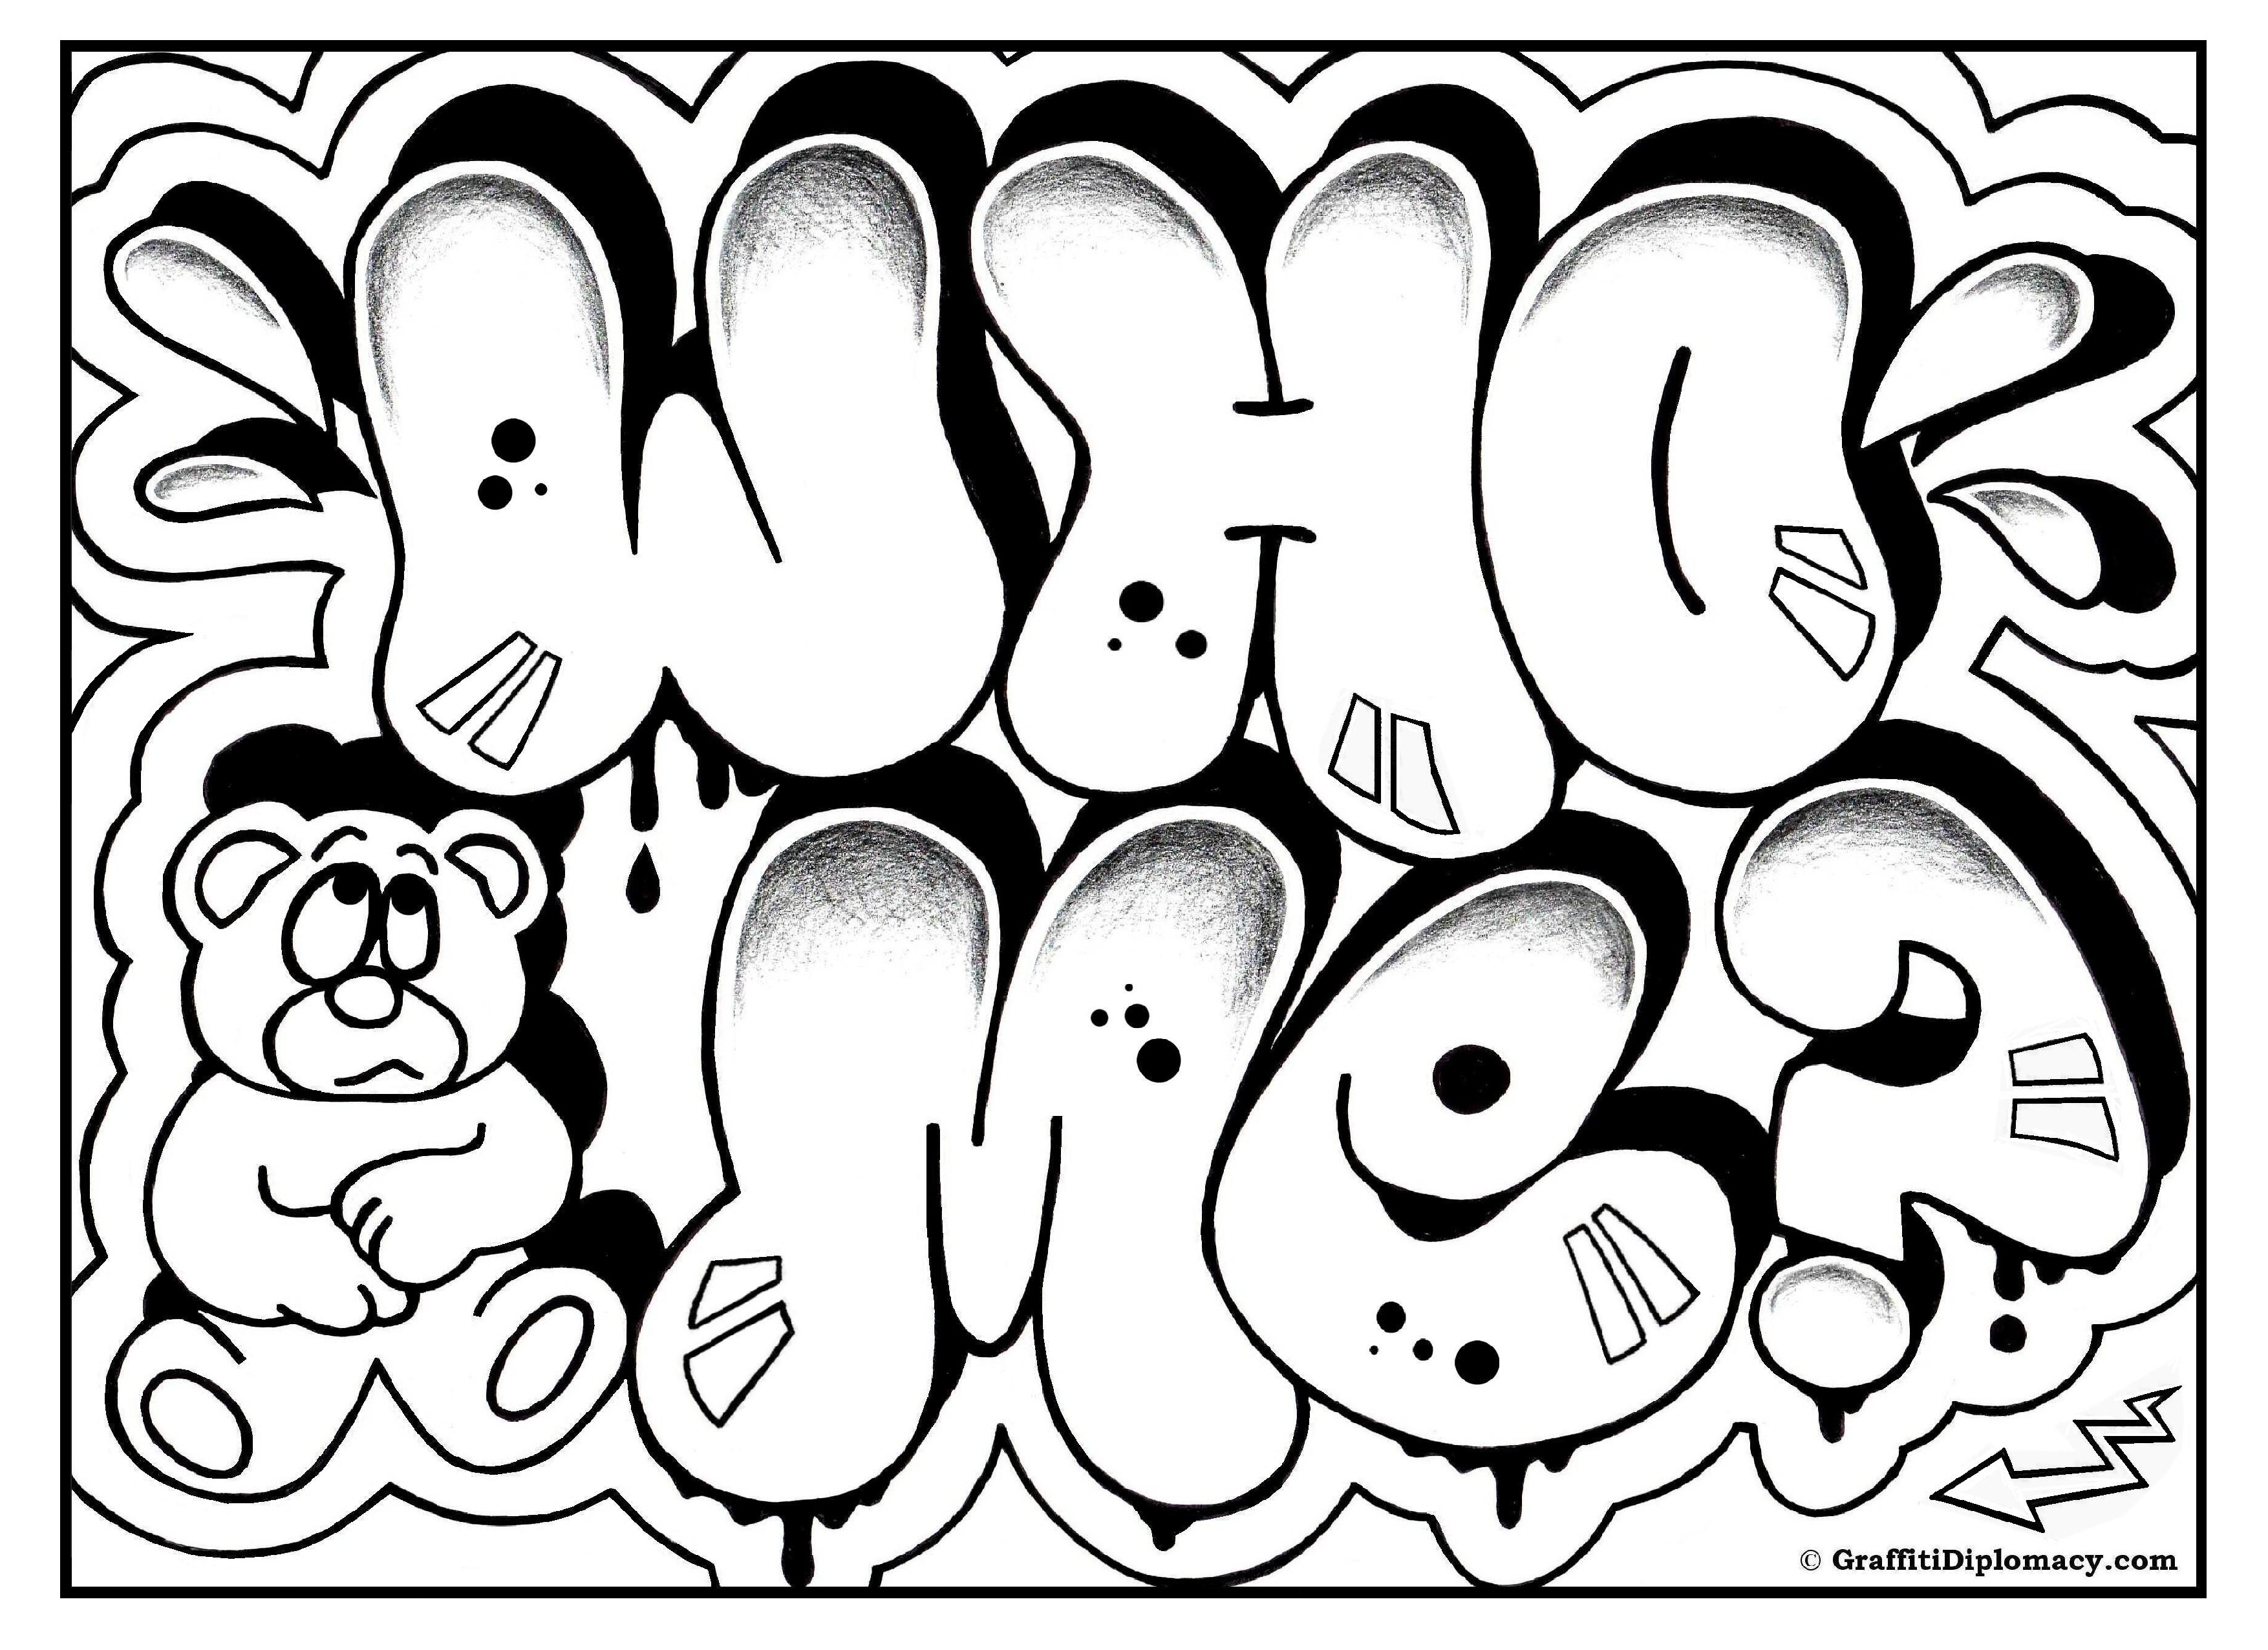 - 23+ Amazing Image Of Graffiti Coloring Pages - Birijus.com